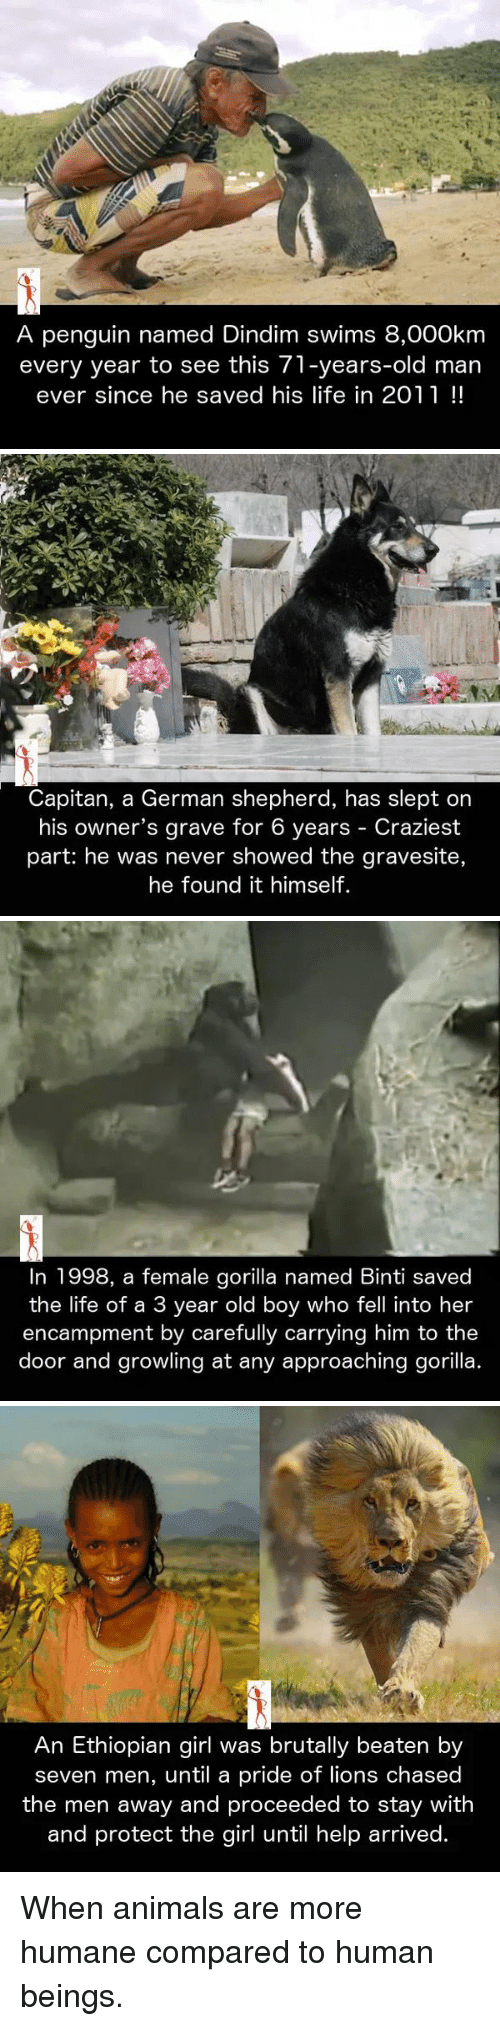 Ethiopians: A penguin named Dindim swims 8,000km  every year to see this 71-years-old man  ever since he saved his life in 2011   Capitan, a German shepherd, has slept on  his owner's grave for 6 years Craziest  part: he was never showed the gravesite,  he found it himself.   In 1998, a female gorilla named Binti saved  the life of a 3 year old boy who fell into her  encampment by carefully carrying him to the  door and growling at any approaching gorilla   An Ethiopian girl was brutally beaten by  seven men, until a pride of lions chased  the men away and proceeded to stay with  and protect the girl until help arrived. When animals are more humane compared to human beings.